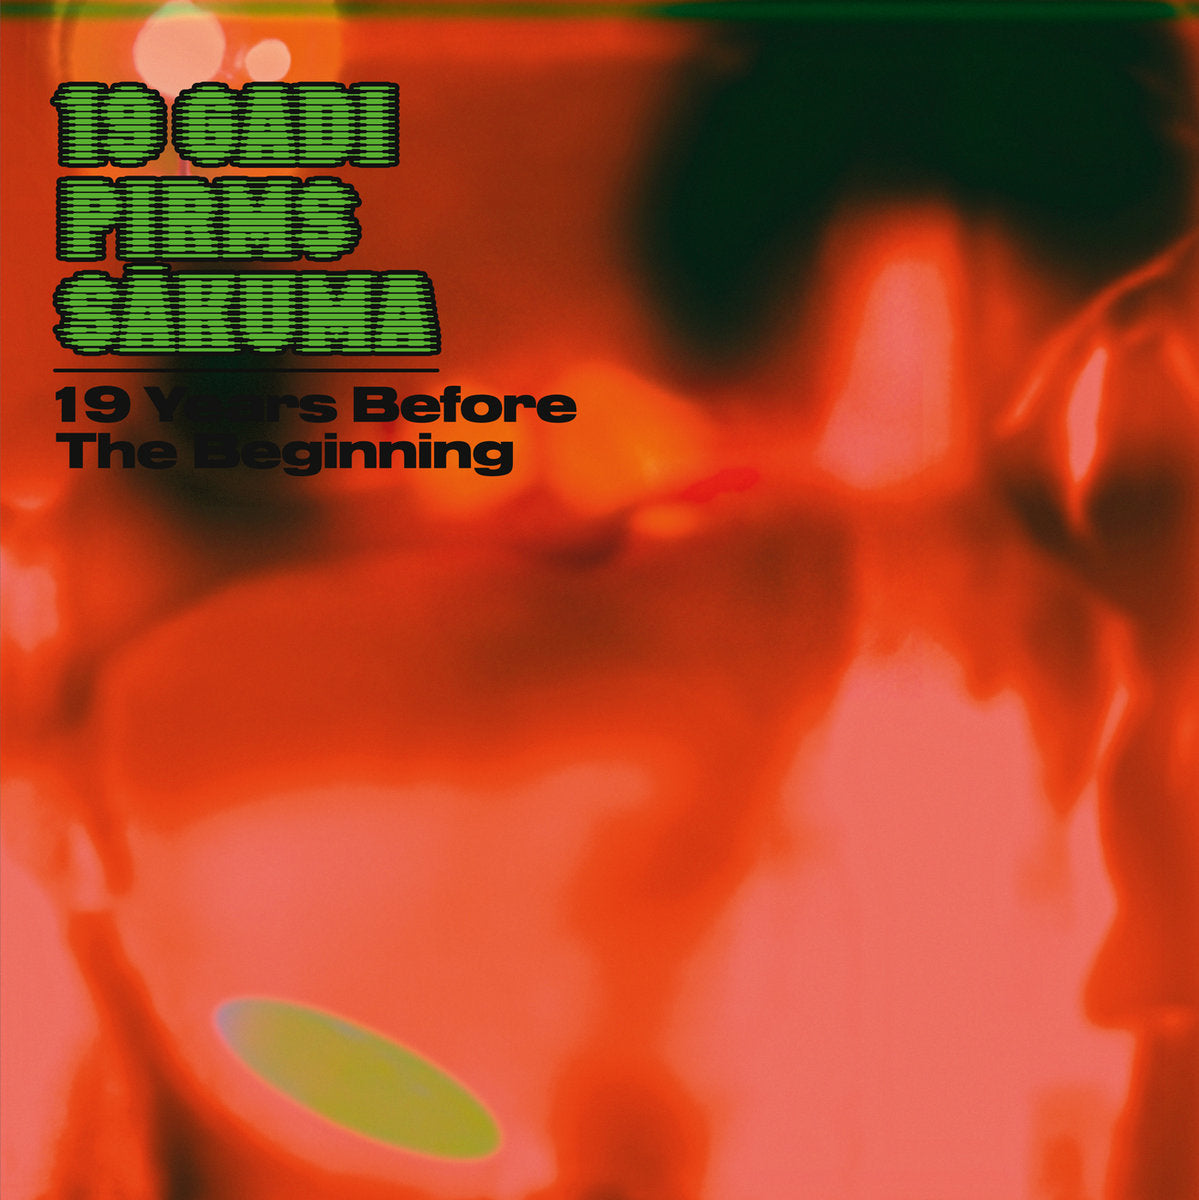 19 Gadi Pirms Sākuma ‎– 19 Years Before The Beginning LP